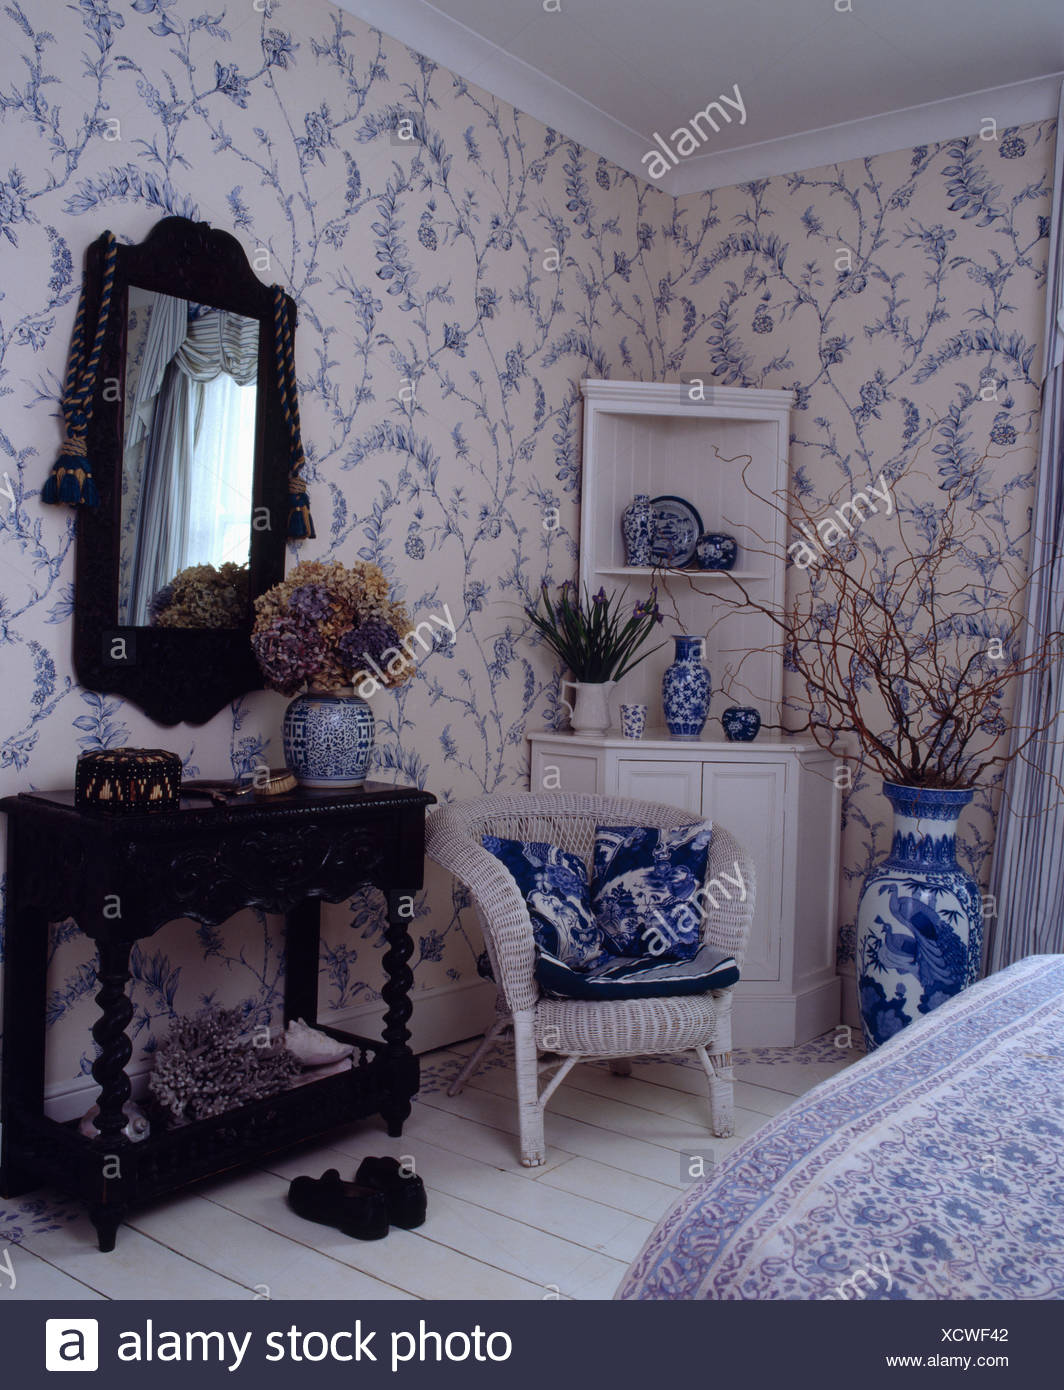 Pleasant Blue And White Wallpaper In Bedroom With White Wicker Chair Uwap Interior Chair Design Uwaporg